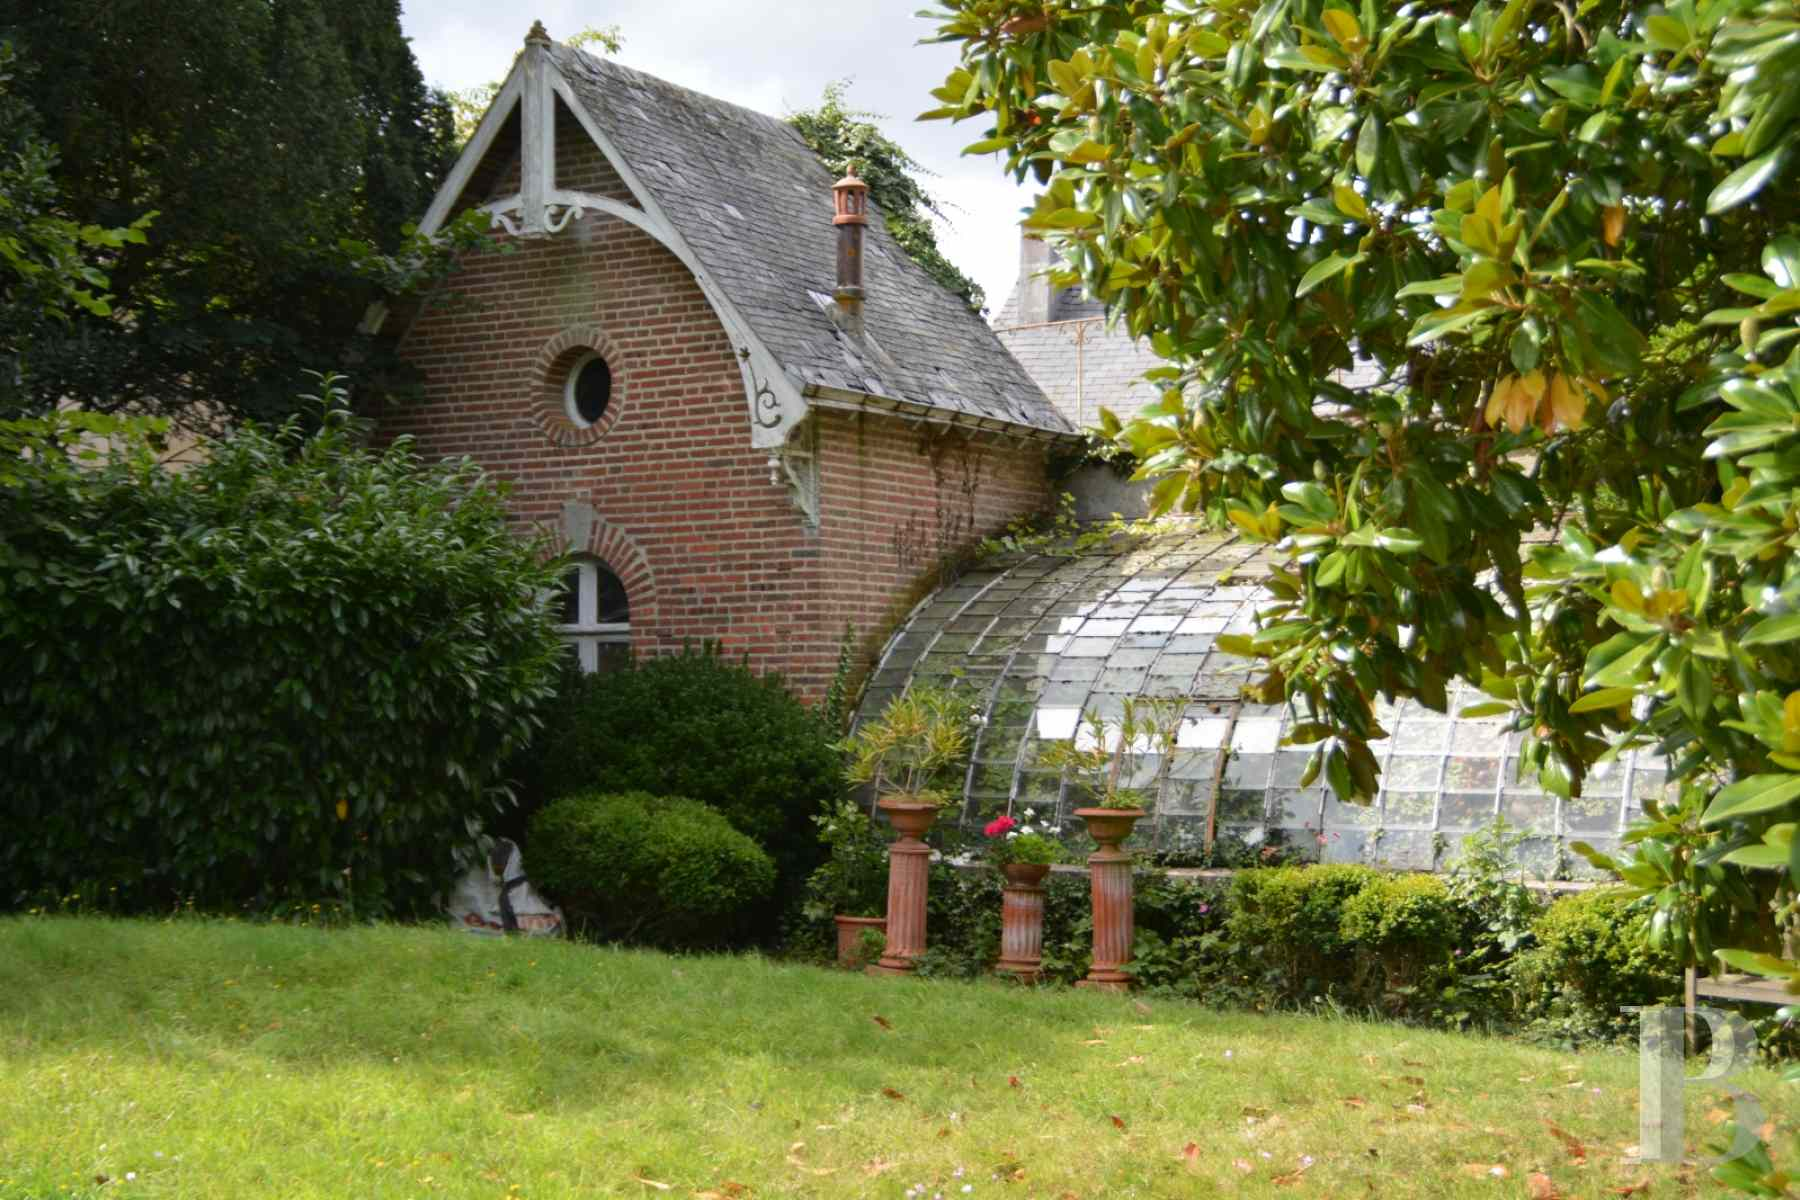 property for sale France brittany property ille - 3 zoom